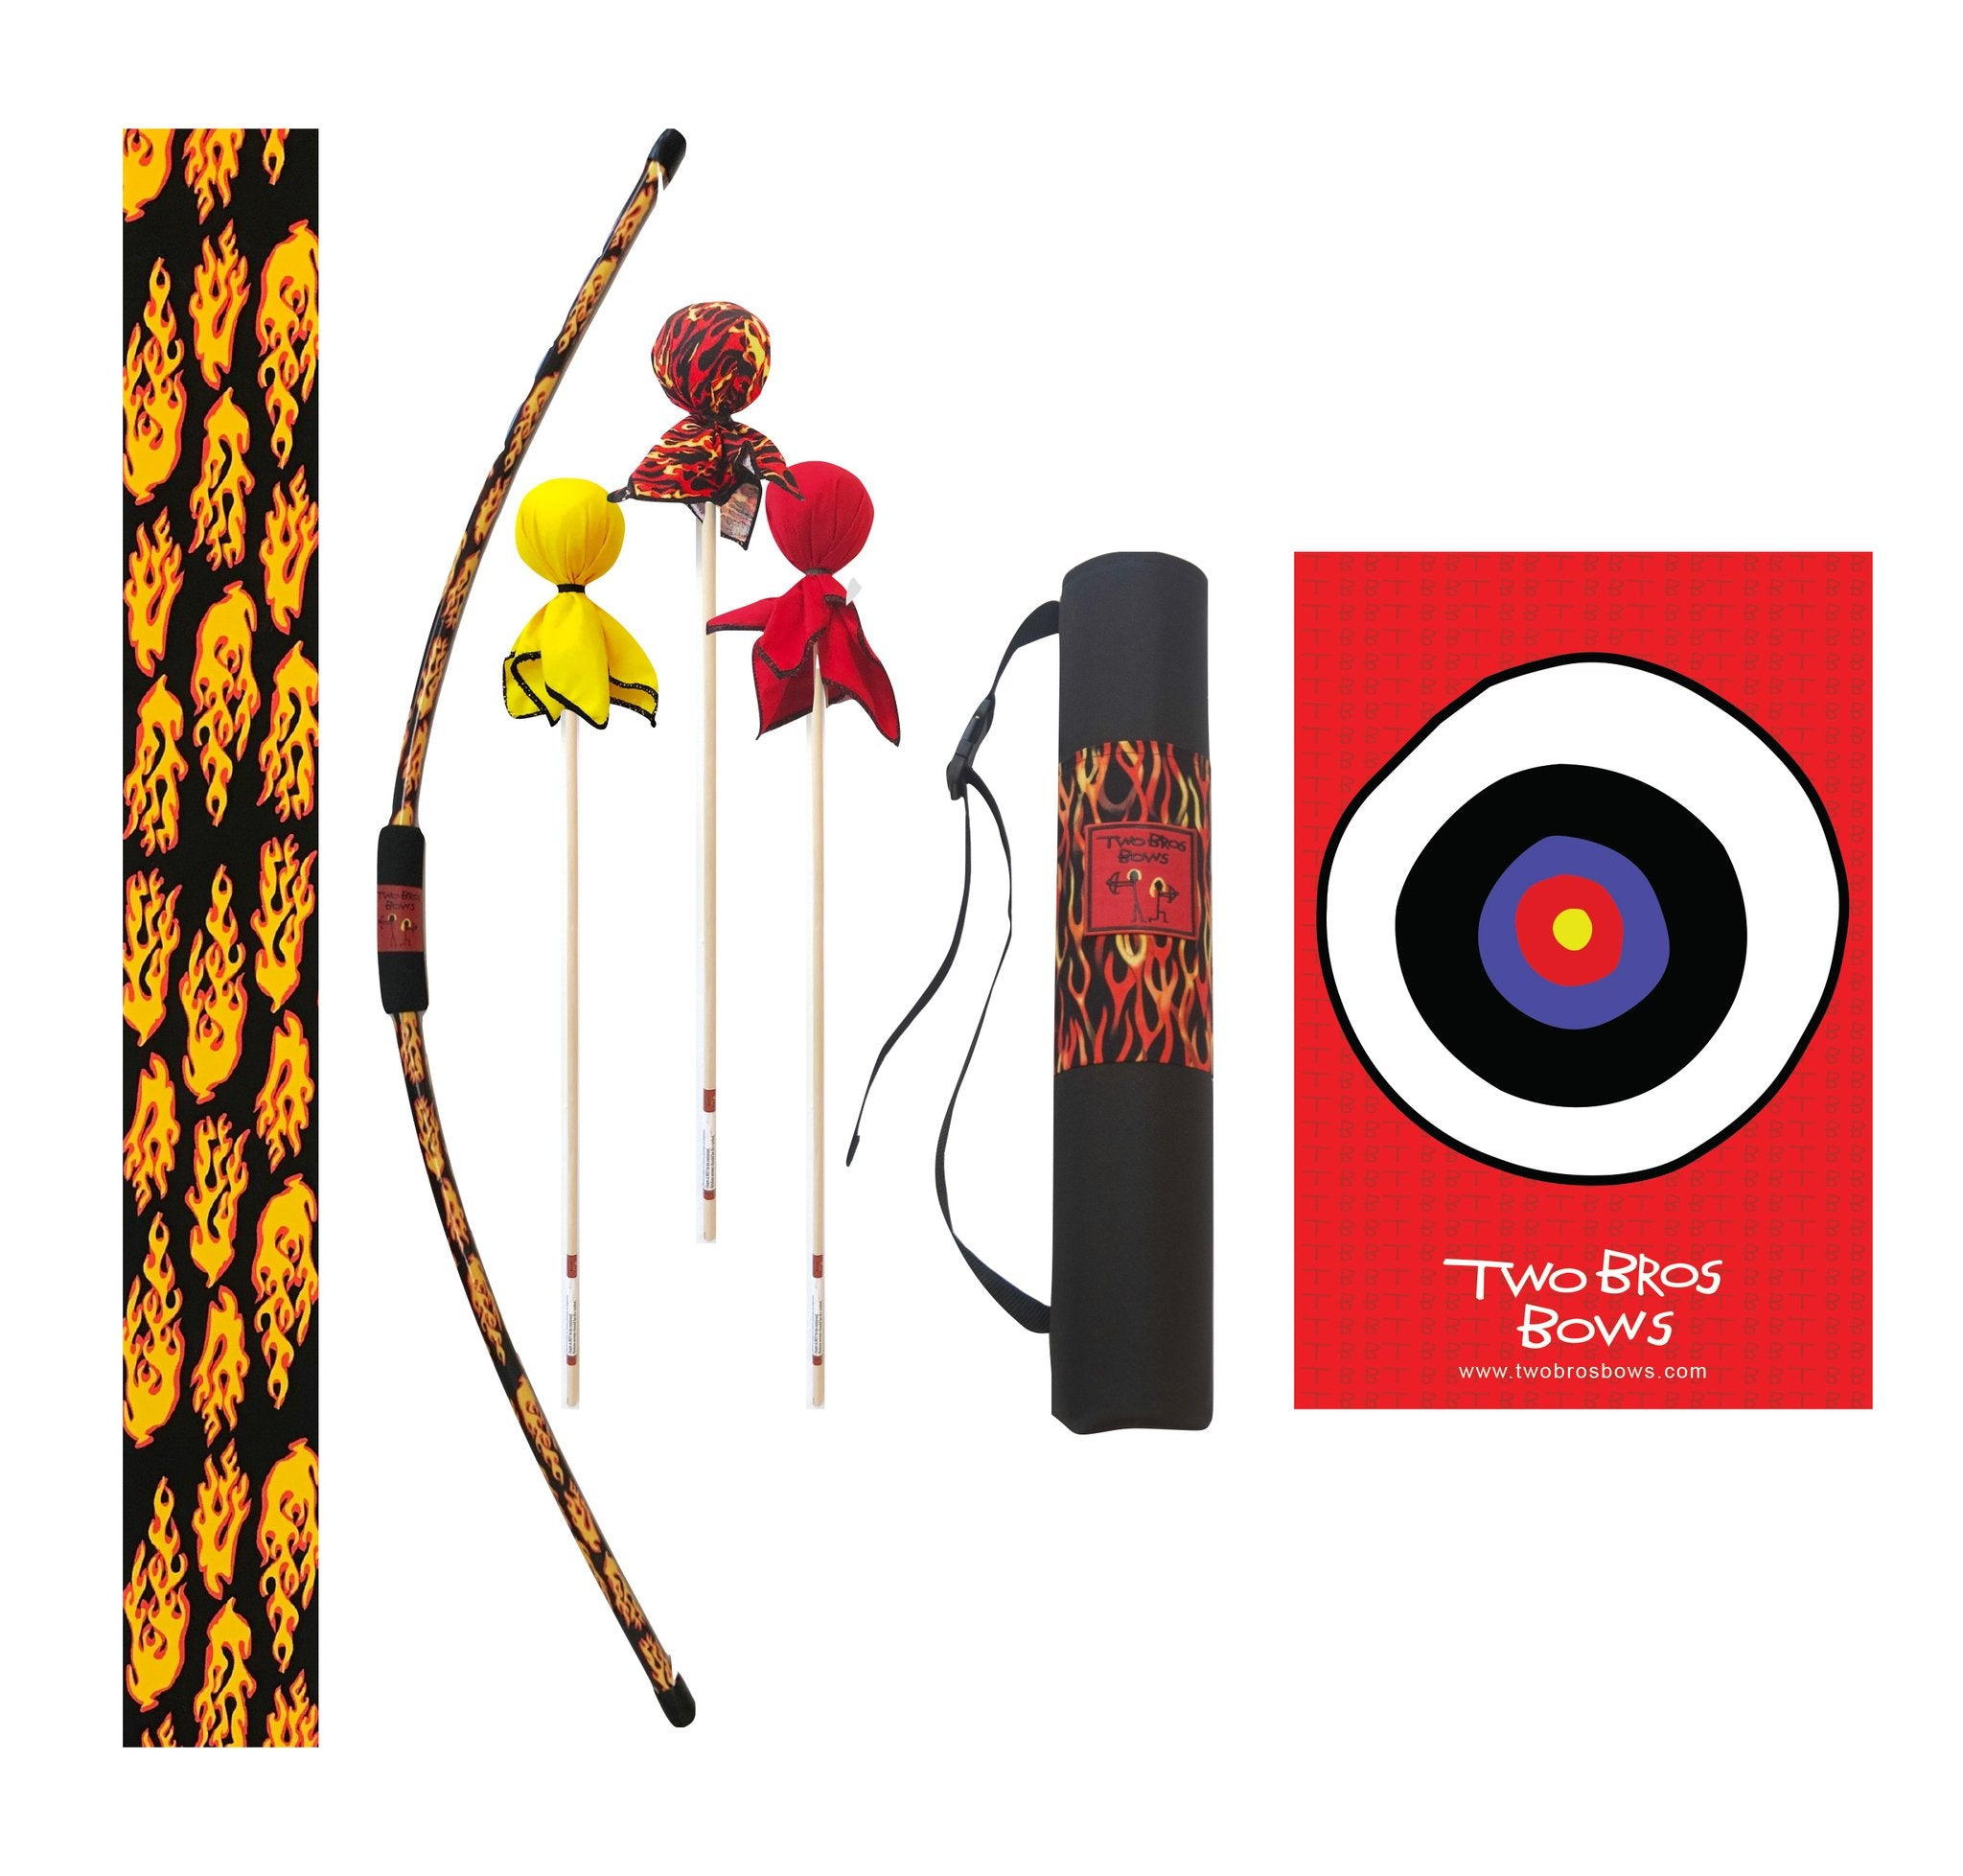 Flame Bow Deluxe Set, 3 Arrows- Flame, Yellow and Red, Flame Quiver Bag and Small Bullseye by Two Bros Bows